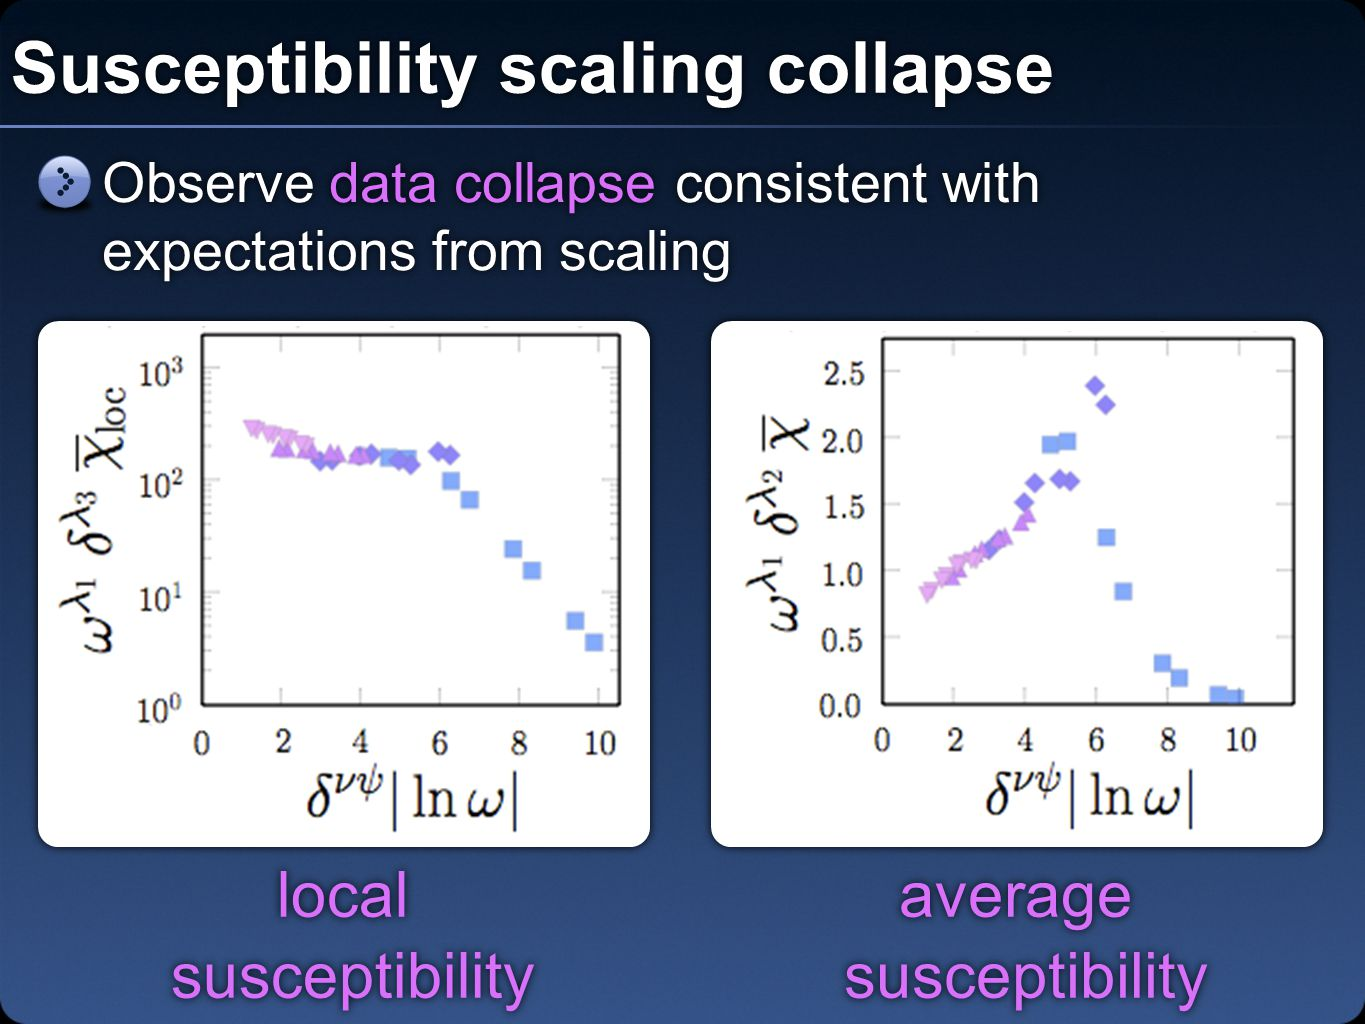 Susceptibility scaling collapse average susceptibility average susceptibility local susceptibility local susceptibility Observe data collapse consistent with expectations from scaling